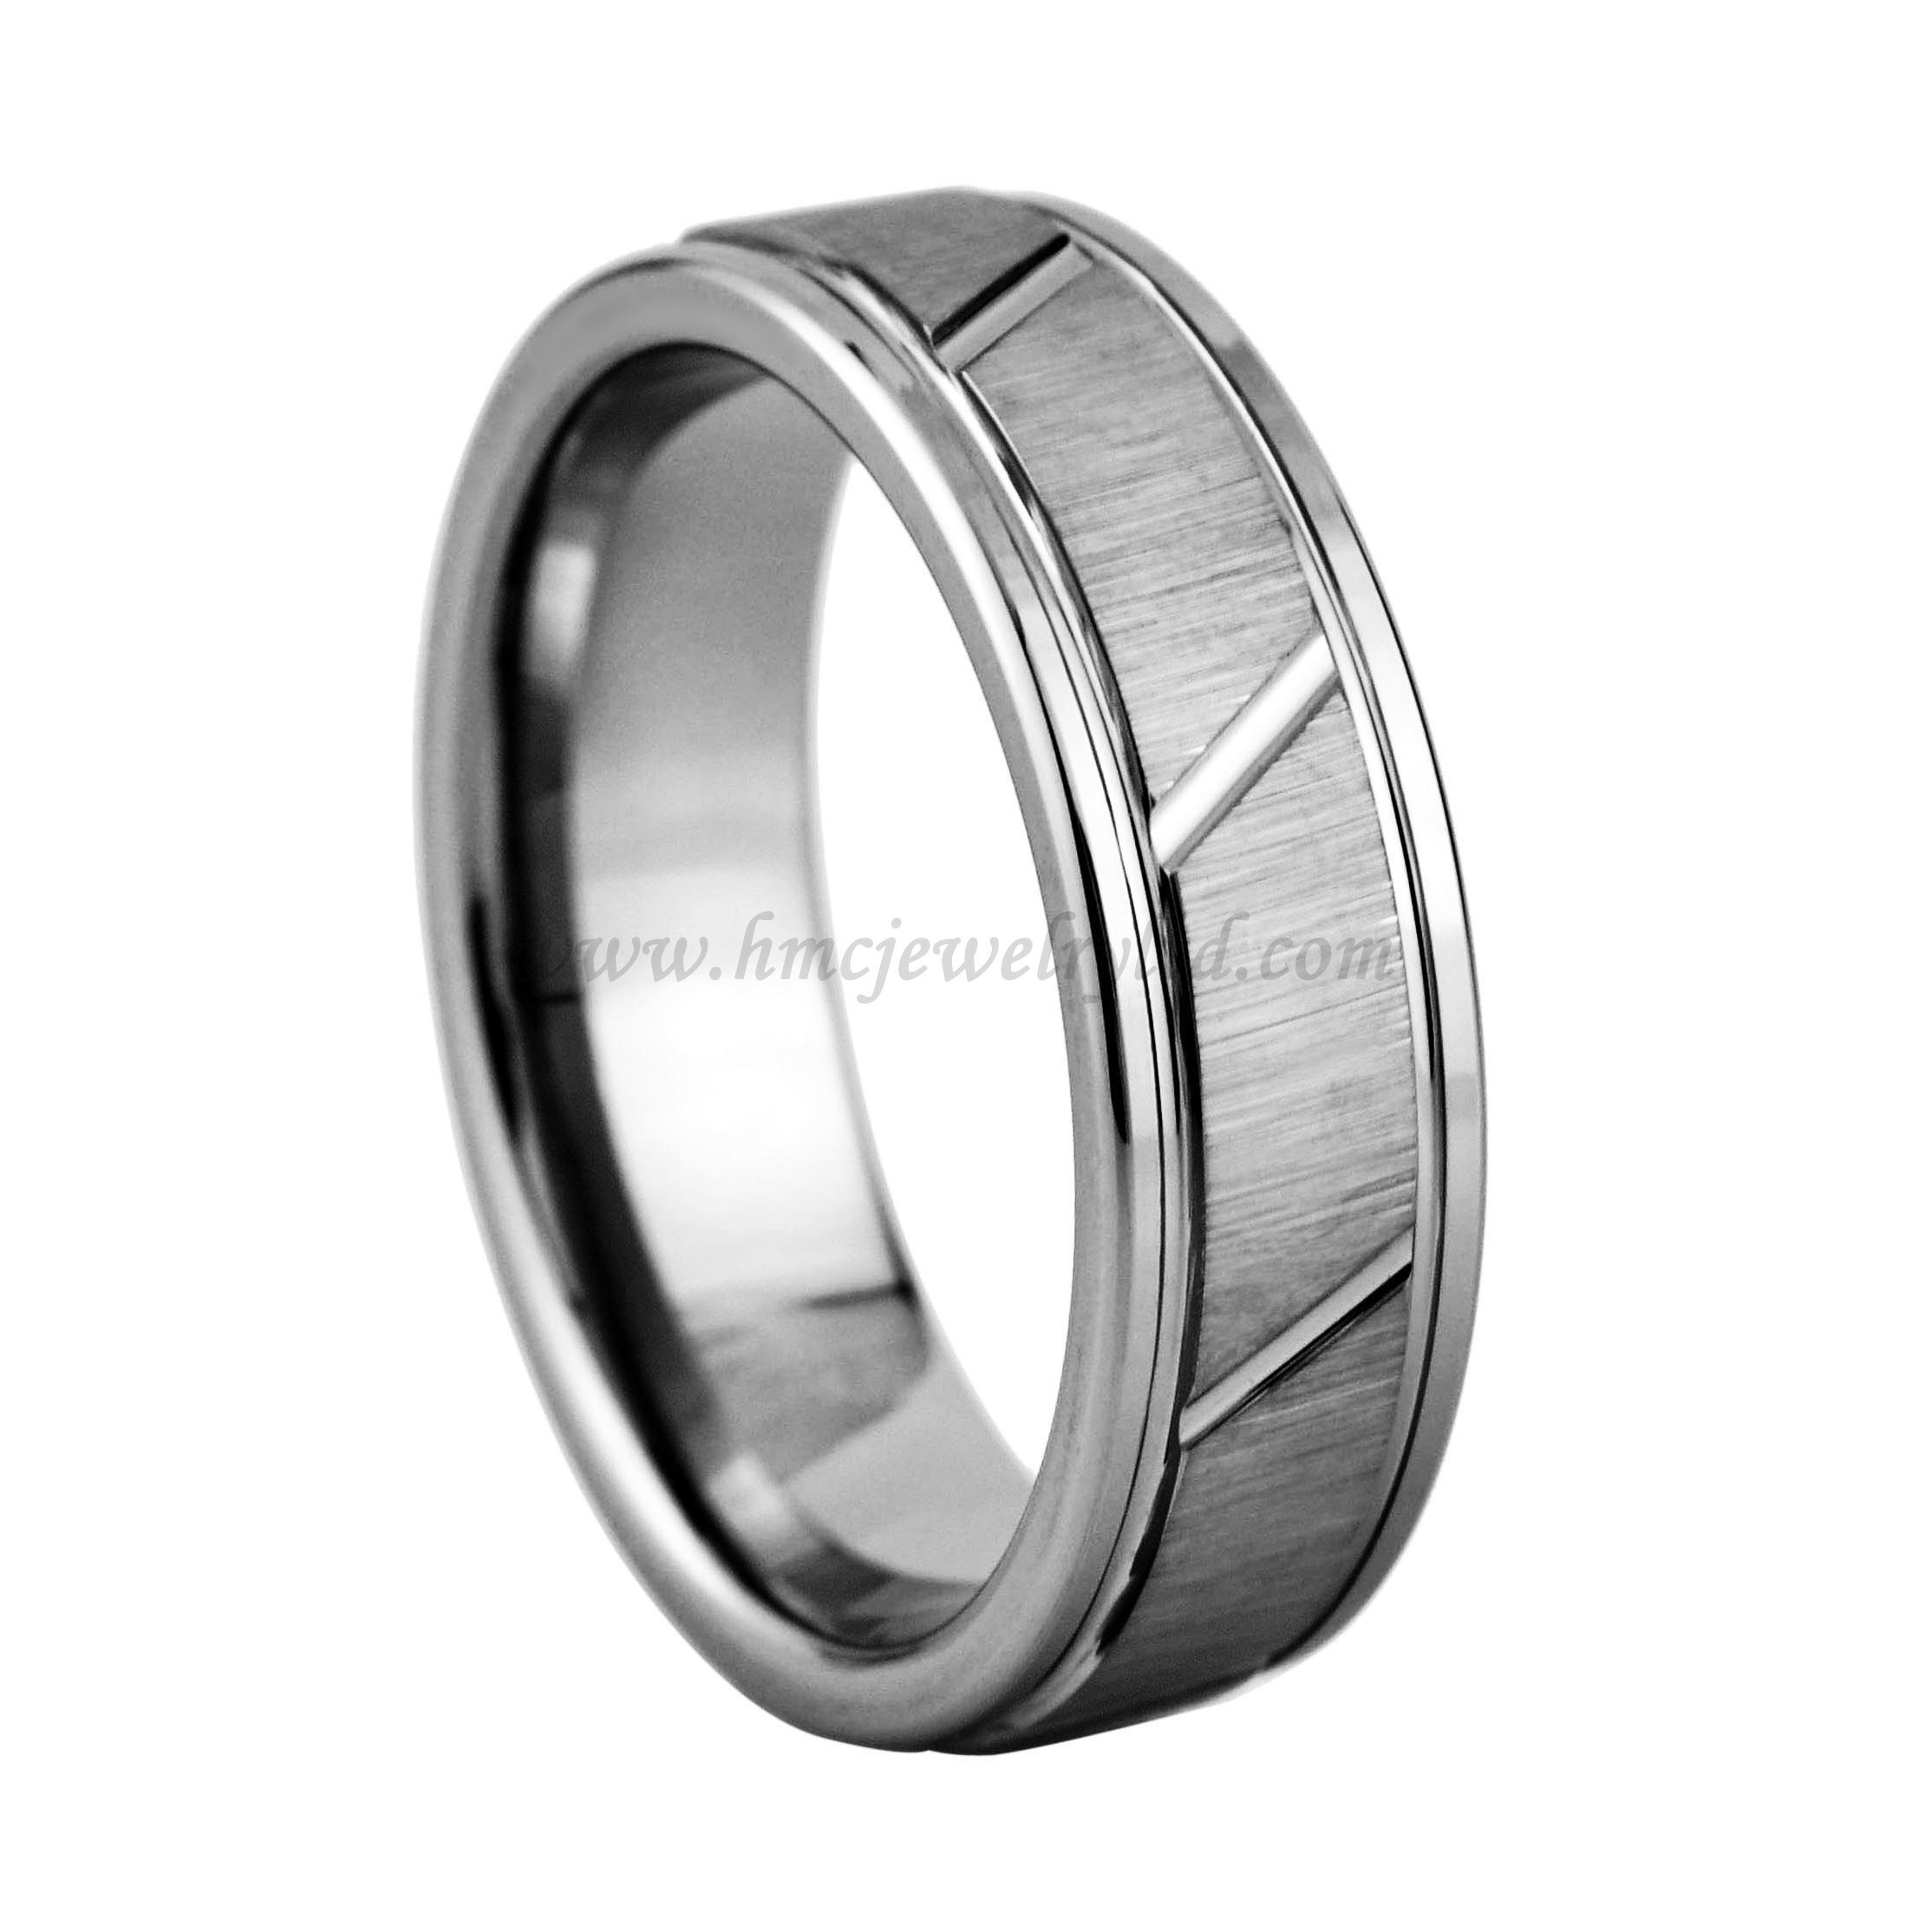 triton bands tungsten jewelers bc engagement alternative rings metal carbide clark